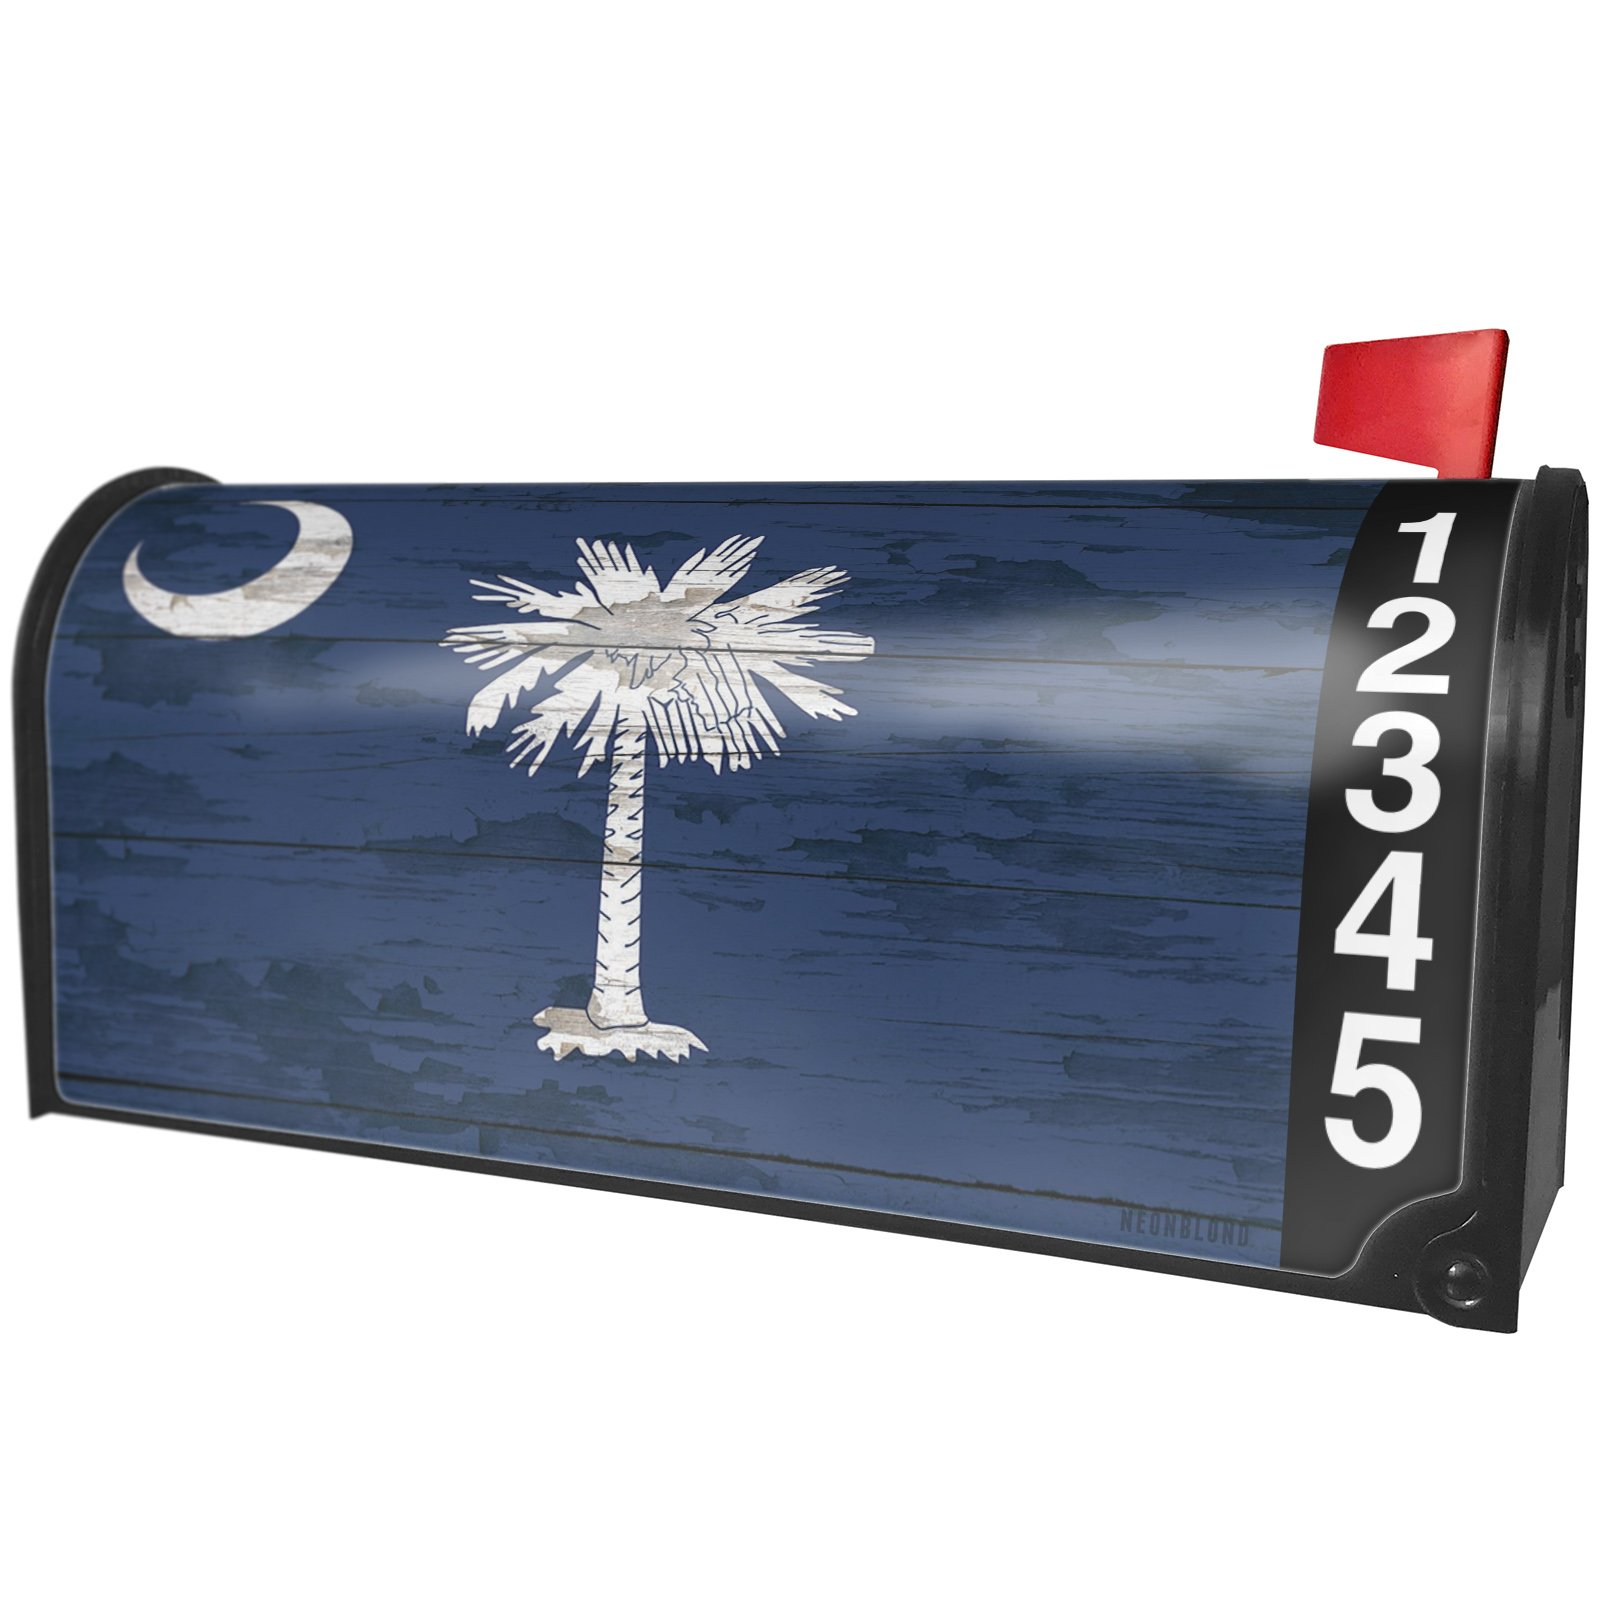 NEONBLOND Flag on Wood South Carolina Region: America (USA) Magnetic Mailbox Cover Custom Numbers